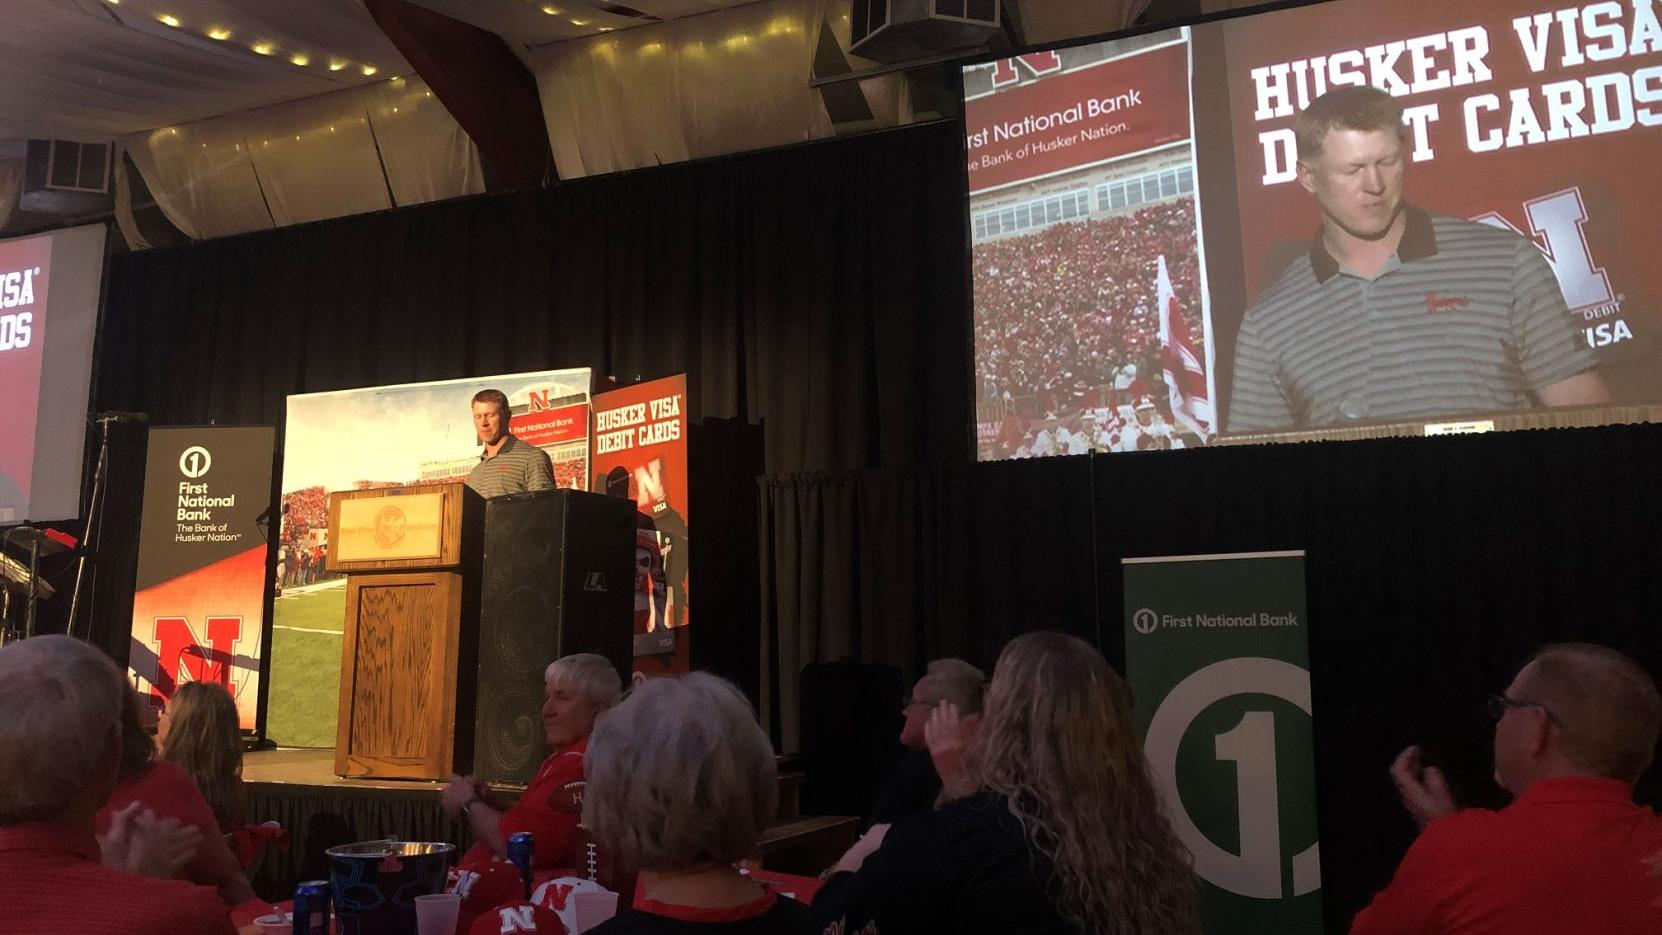 In return to Wood River, Husker coach Frost revels in being 'just Scott'